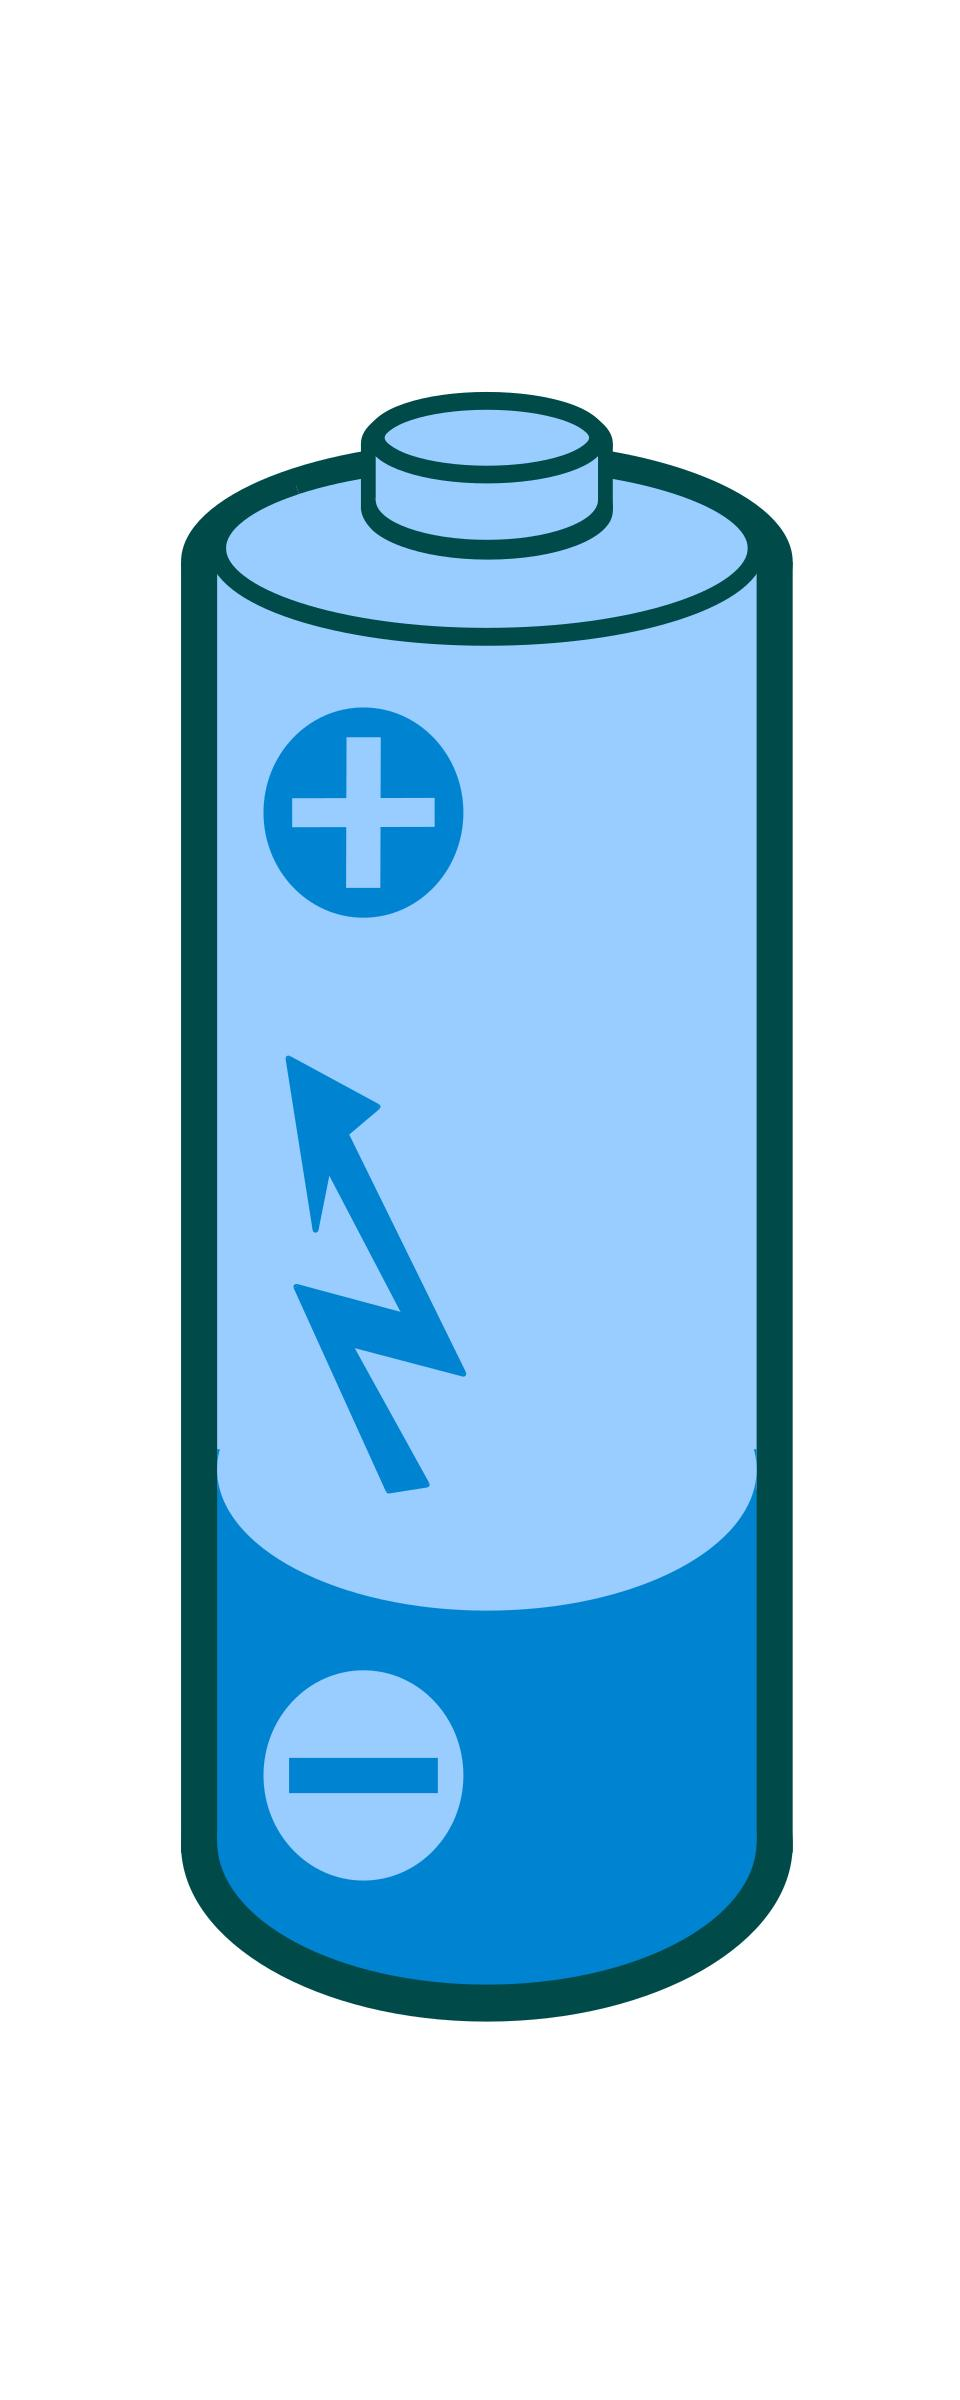 Free icons png images. Battery clipart cylinder